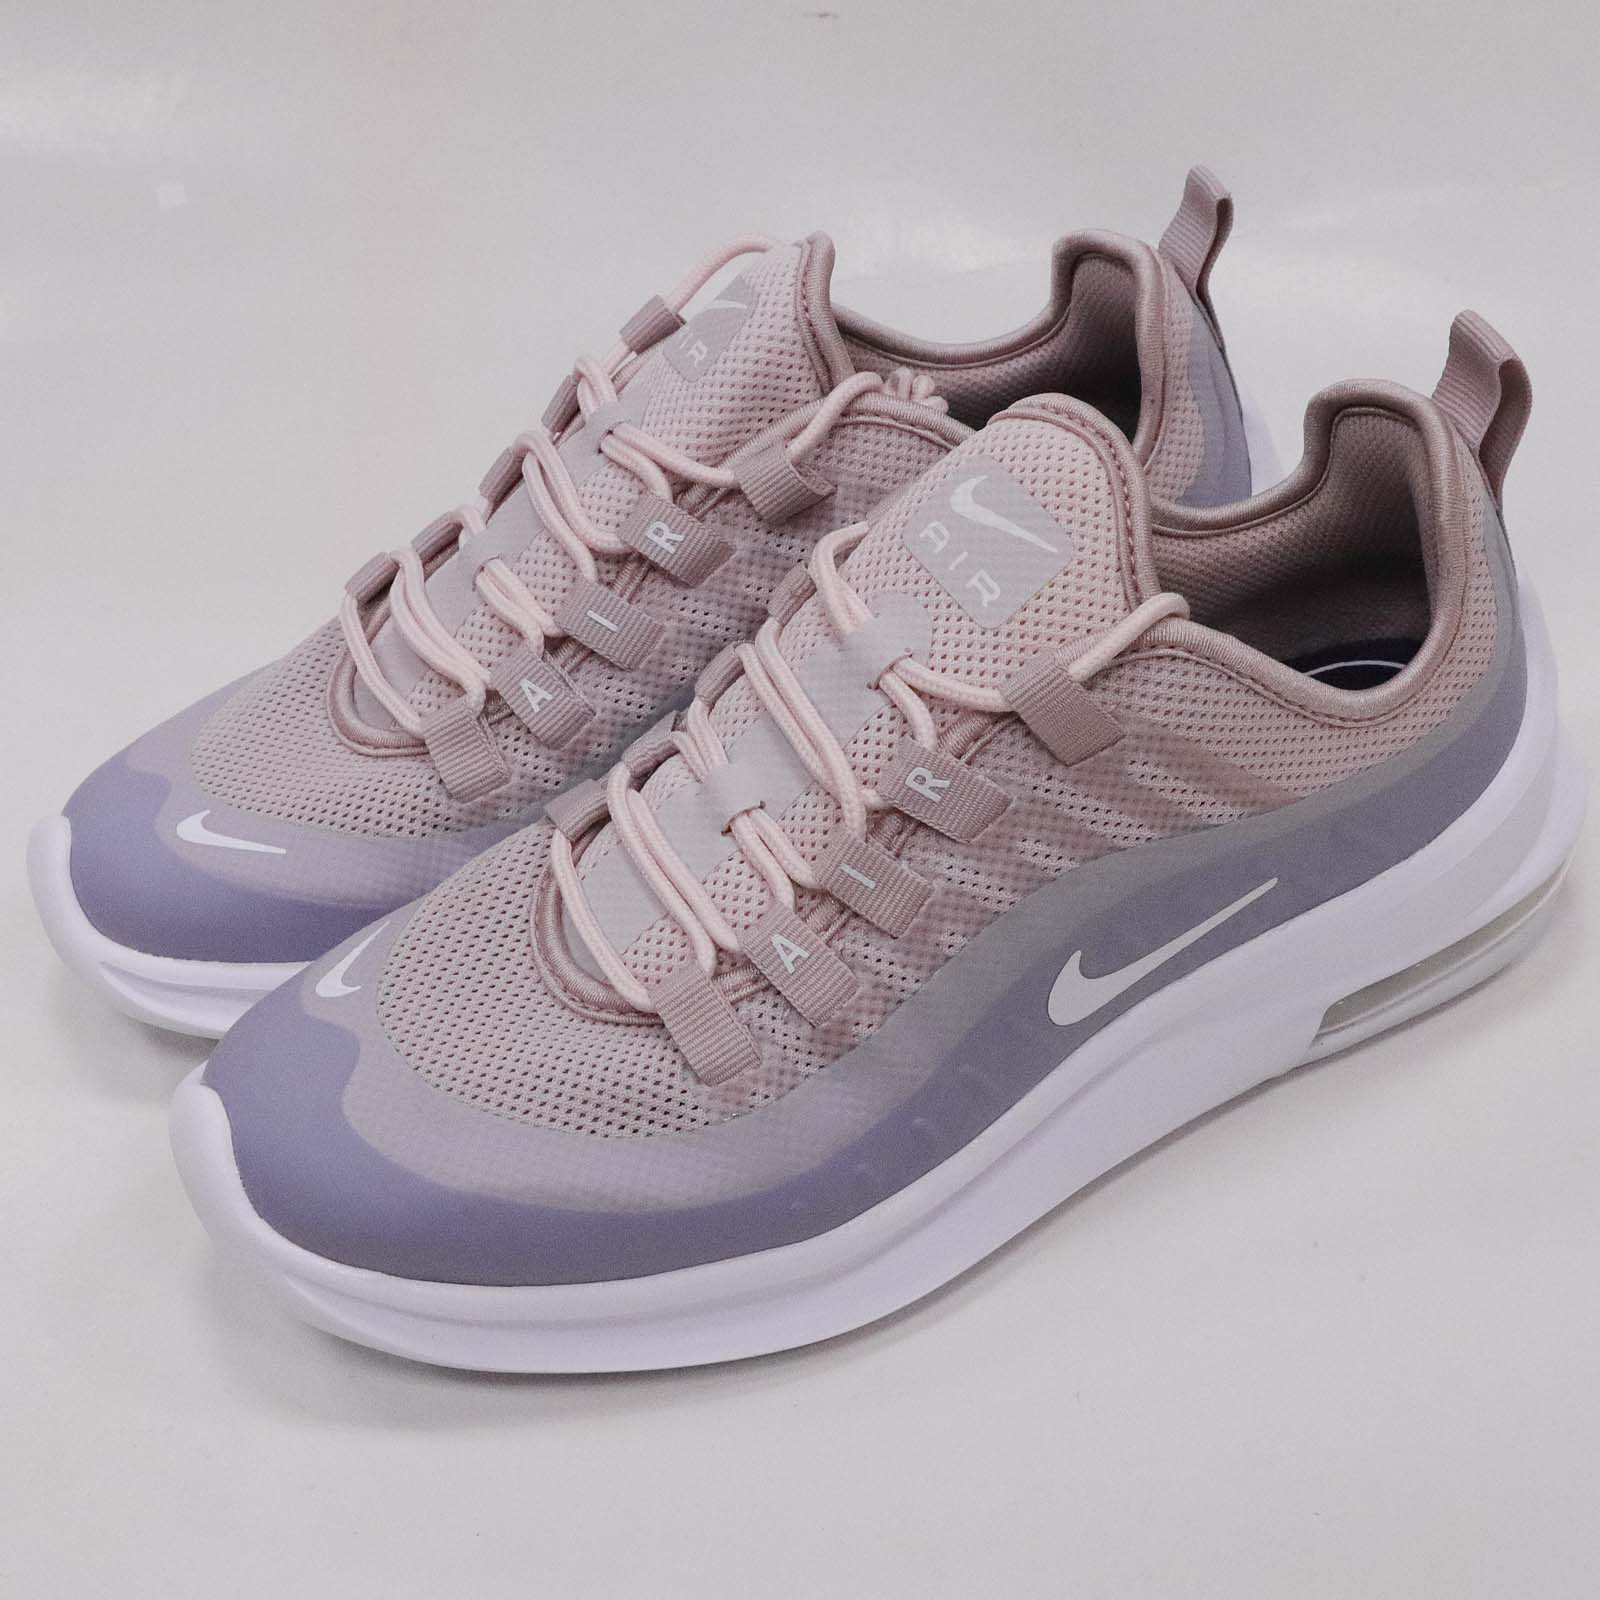 Nike Wmns Air Max Axis LEFT FOOT